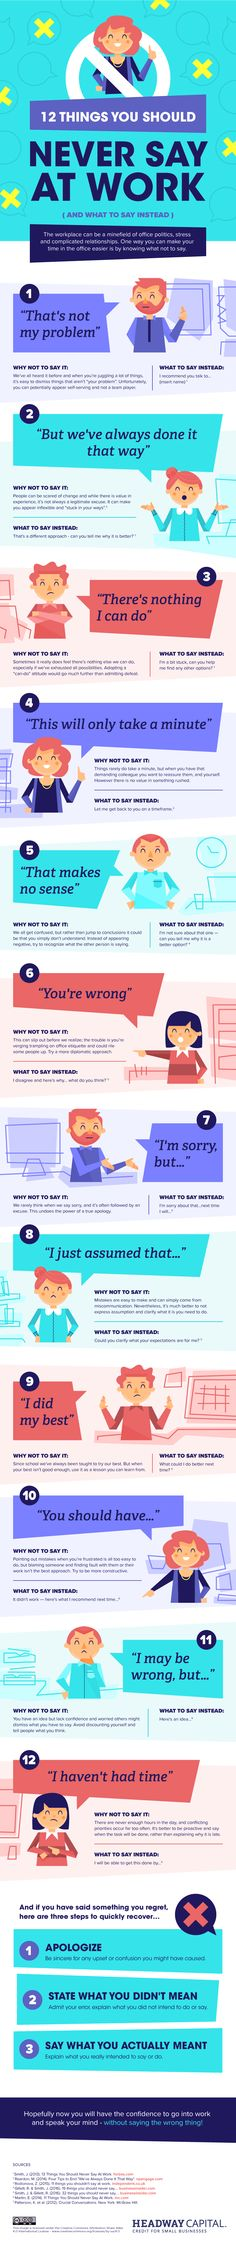 9 Deadly Customer Service Phrases to Avoid (& What to Say